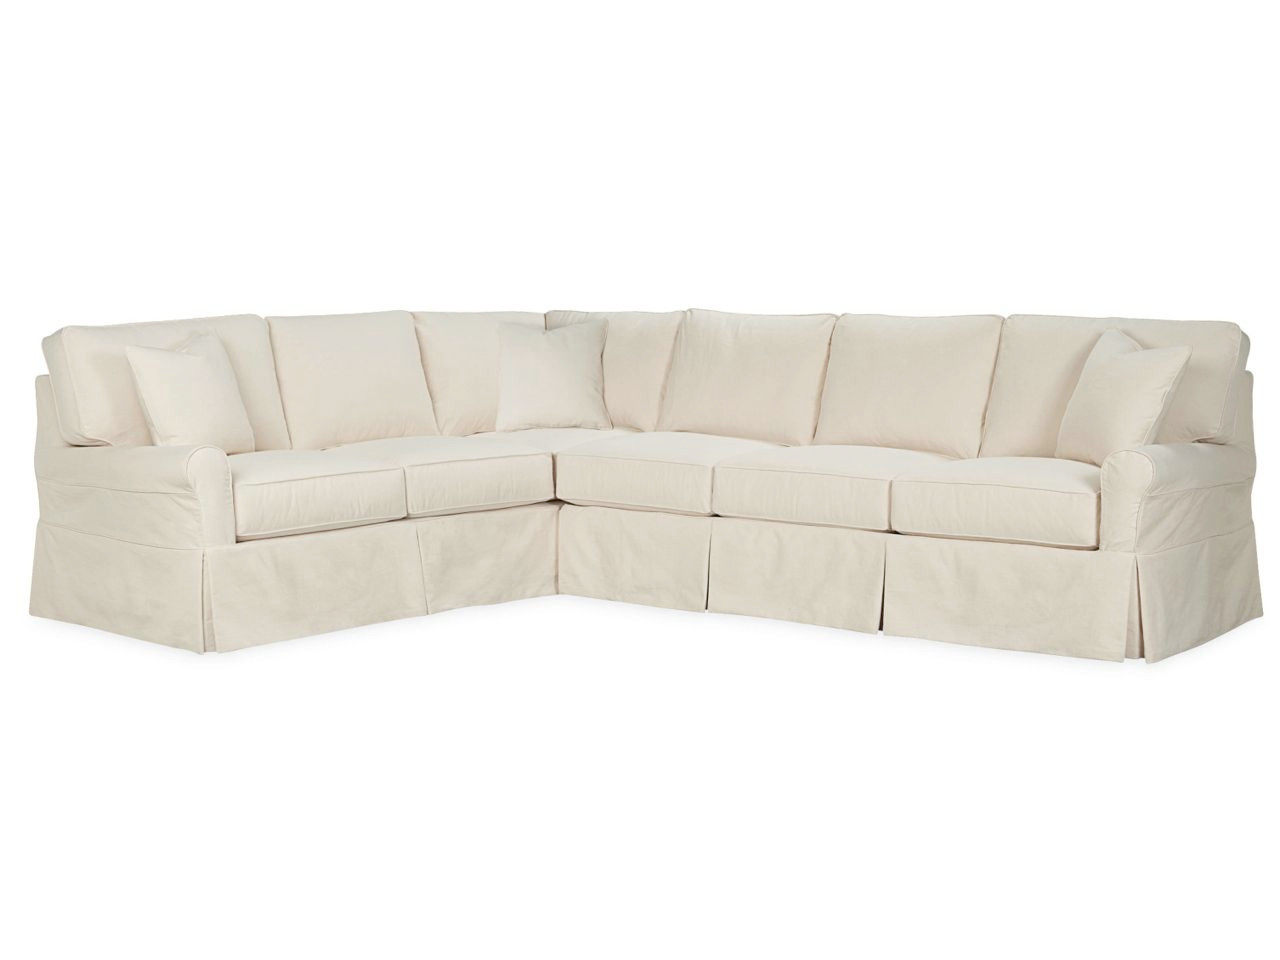 Kelsey Roll Arm Slipcovered Sectional Series | Sectionals ...